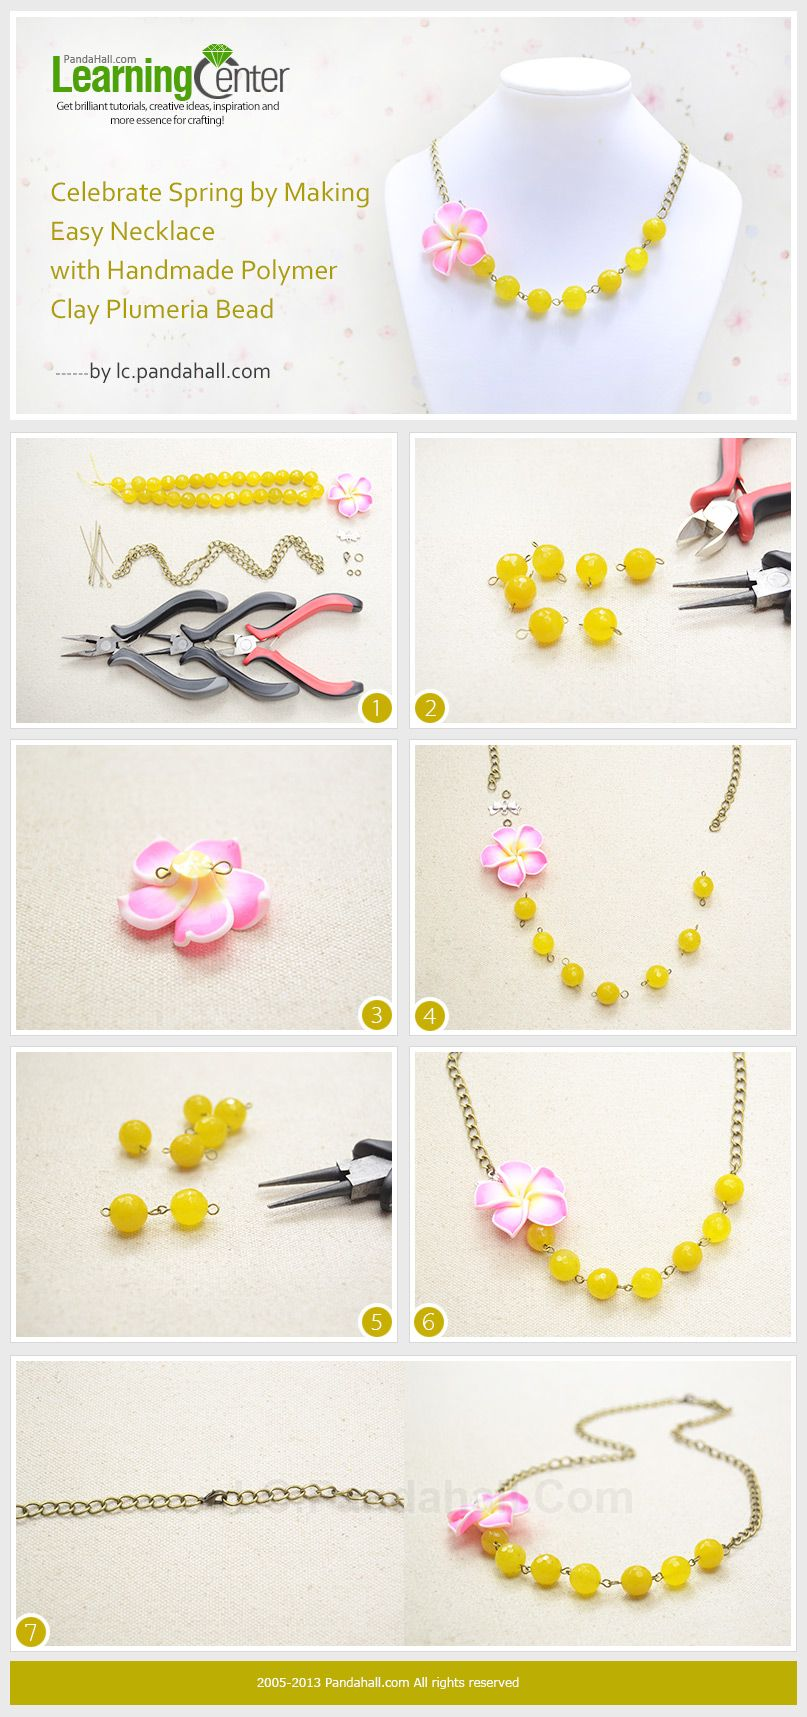 celebrate springmaking easy necklace with handmade polymer